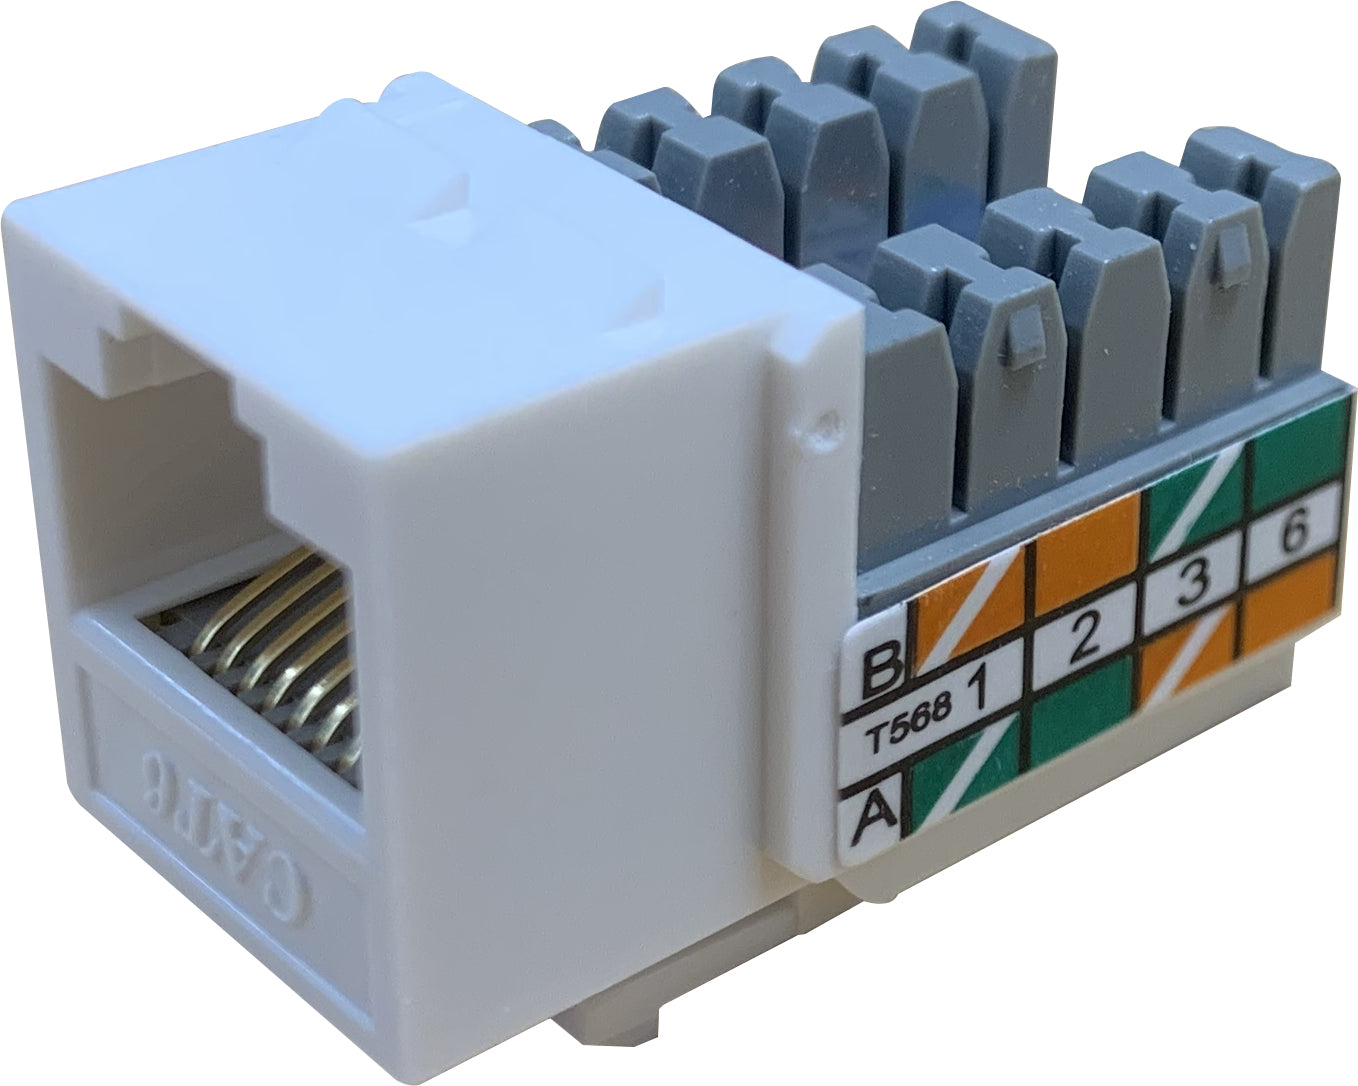 07-6025 90 Degree RJ45 Ethernet Keystone Jack